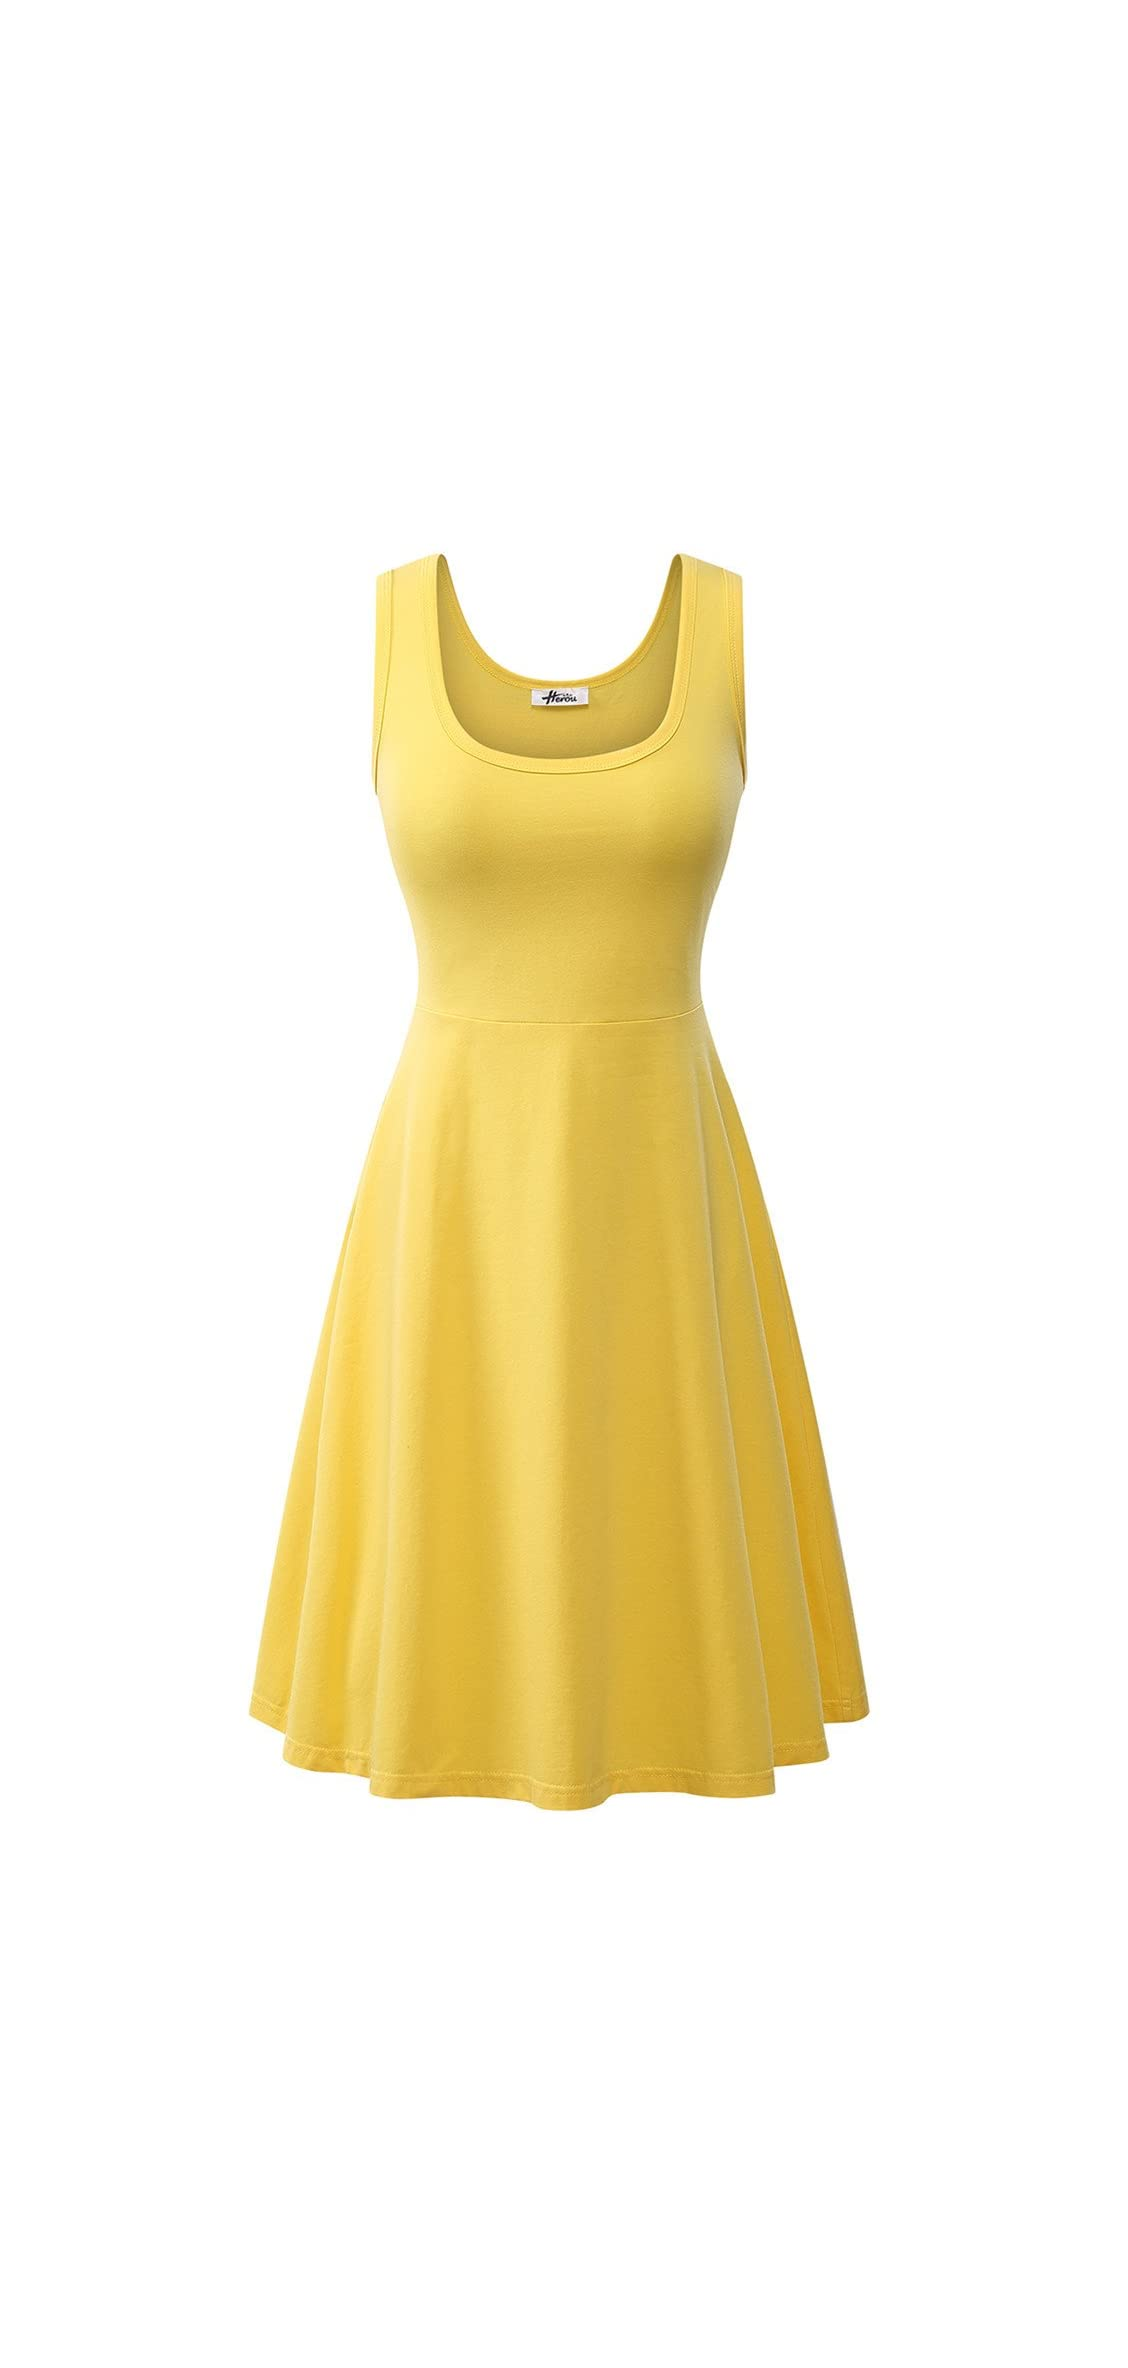 Women Summer Casual Sleeveless Cotton A-line Sun Dresses